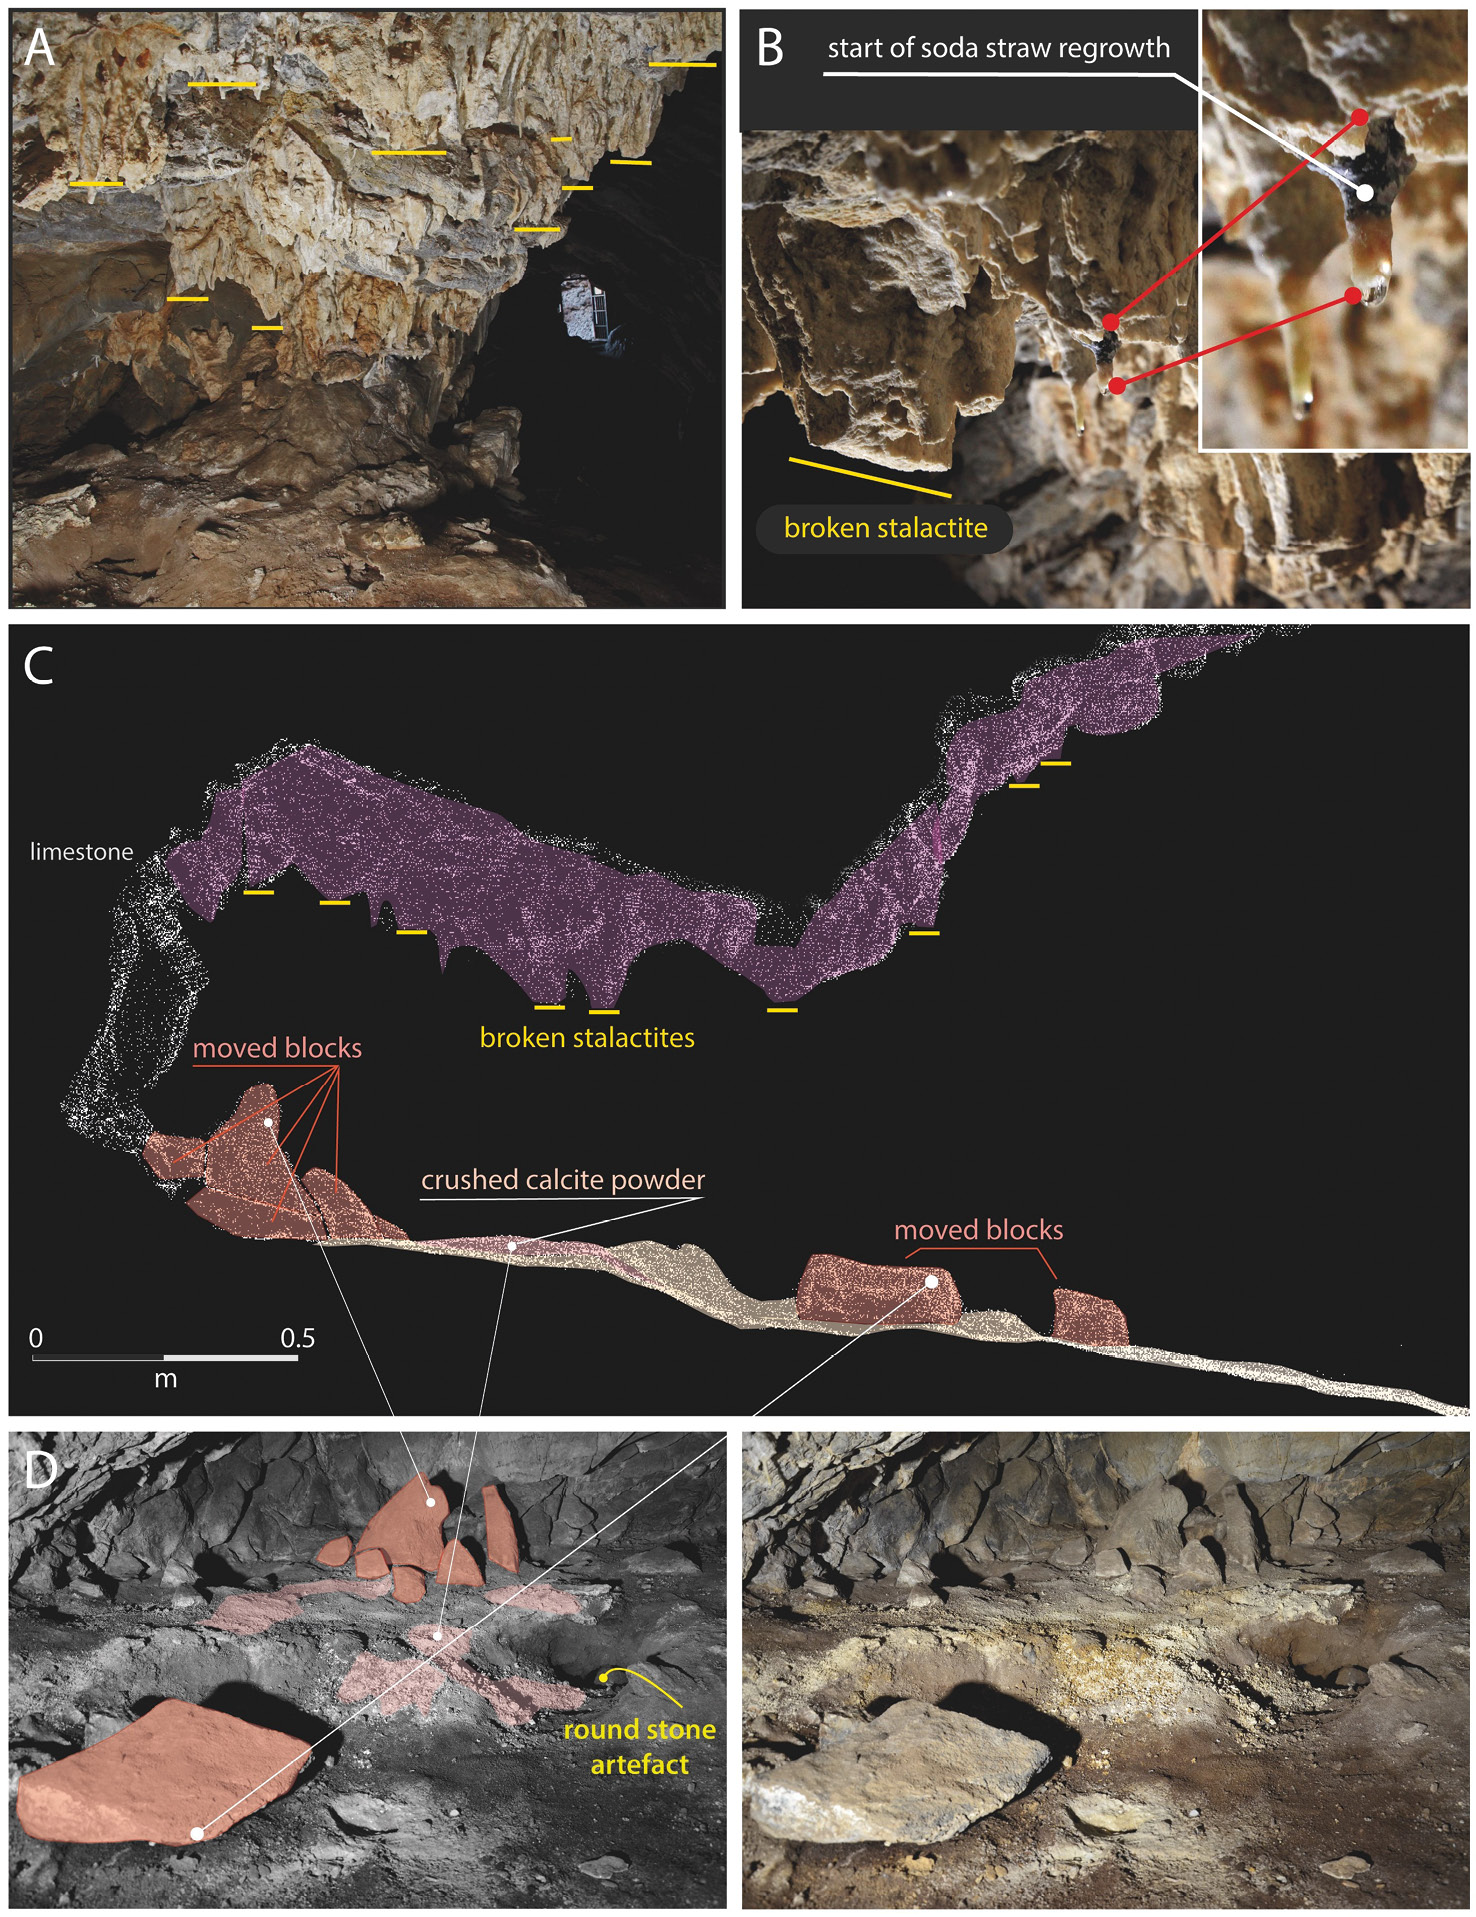 above An alcove in the upper chamber of Cloggs Cave produced intriguing traces of earlier activity. This image shows: (A) broken stalactite stumps on the alcove's ceiling; (B) areas of regrowth on the broken stalactites, showing they are not modern breakages; (C) a cross-section of the alcove created using high-resolution LiDAR; (D) a stone arrangement. All of the elements tinted orange in the left-hand photograph were brought from elsewhere, while the crushed calcite powder is also visible.